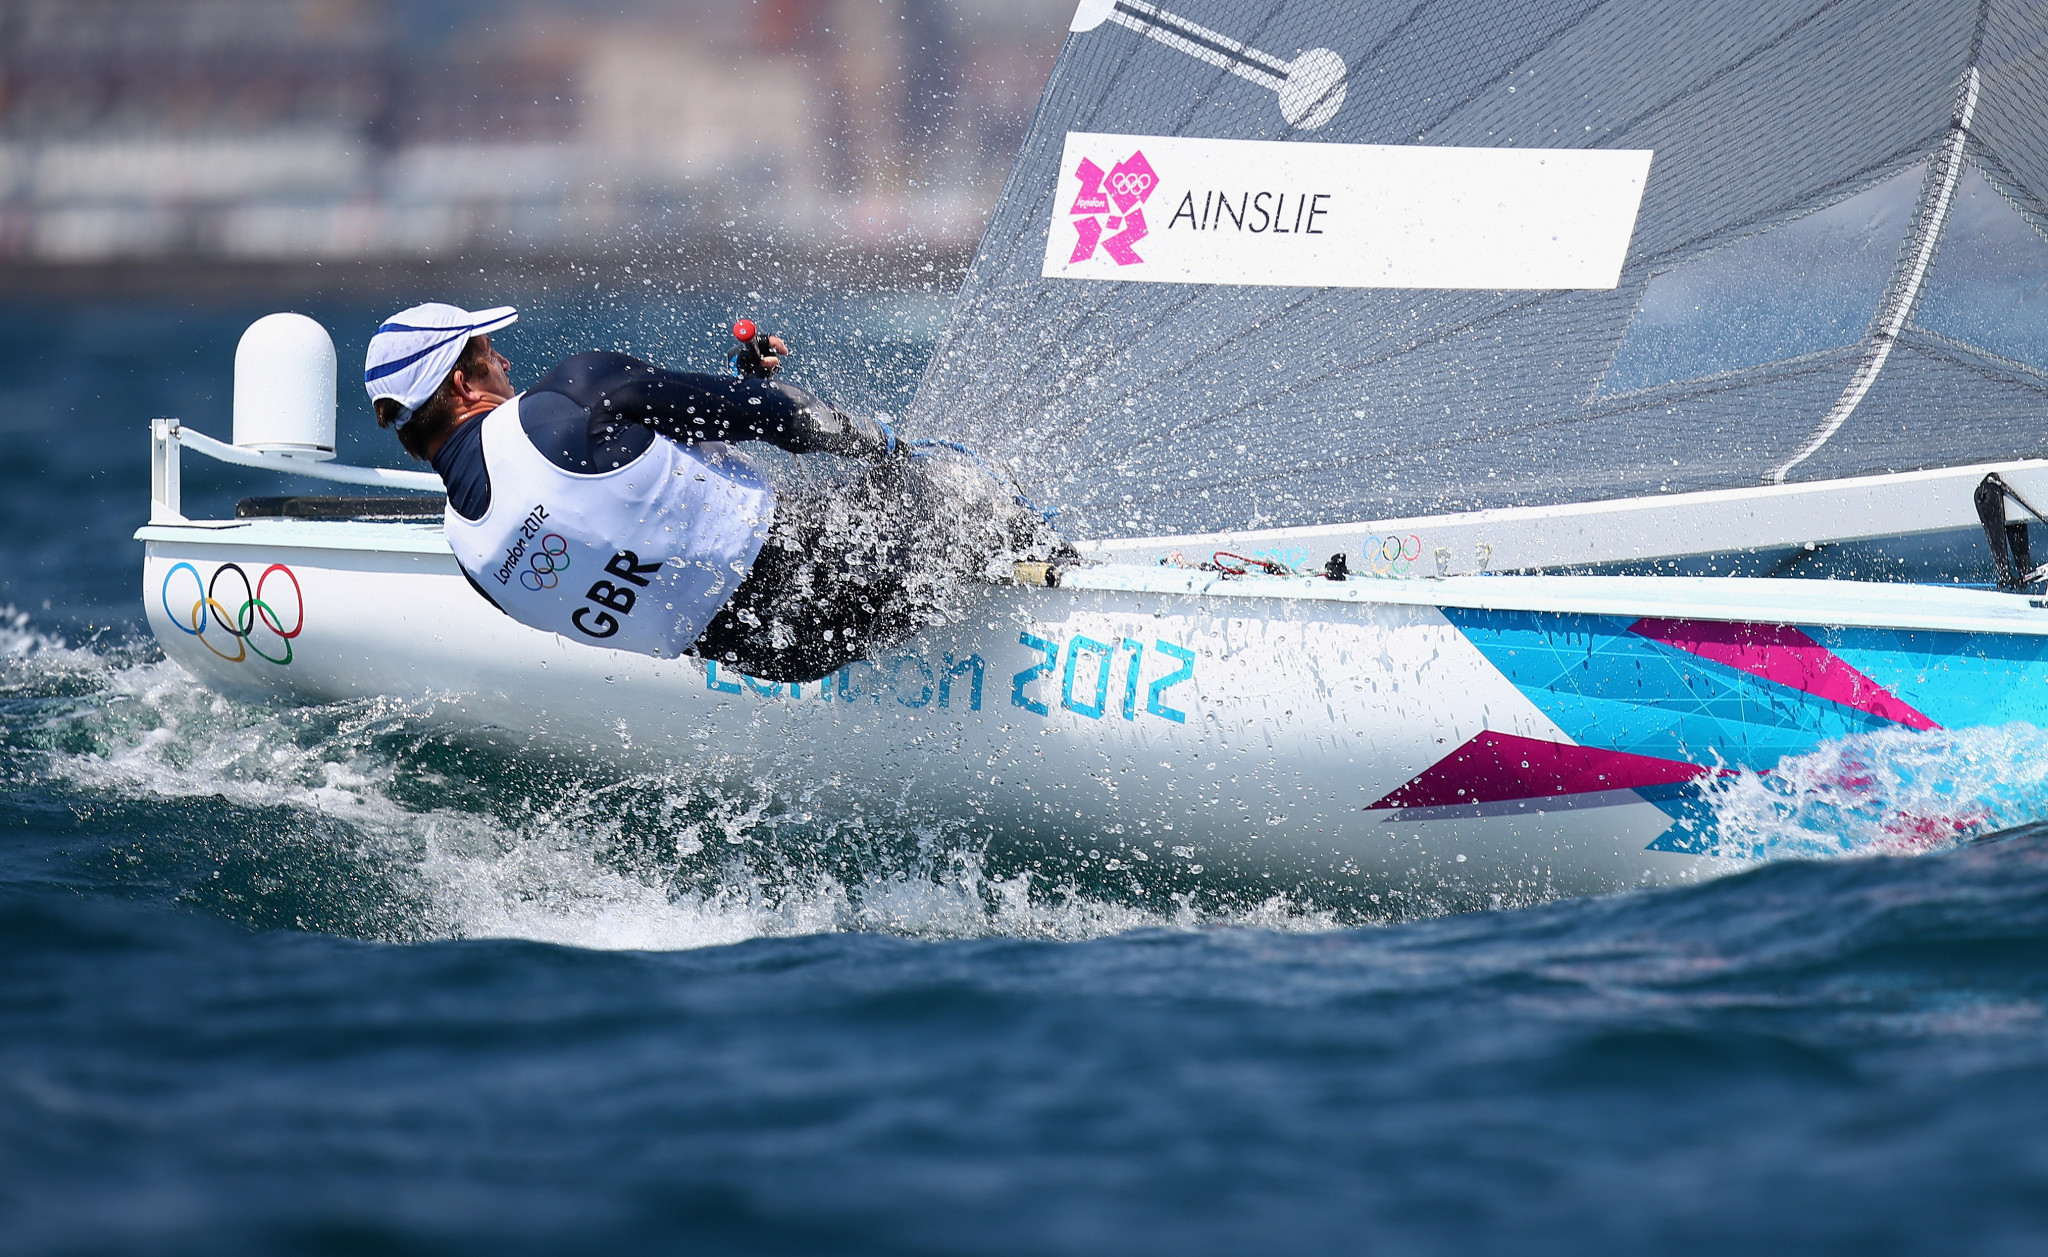 Sir Ben Ainslie won gold medals at four consecutive Olympics, but the sailing format leaves more room for error ©Getty Images